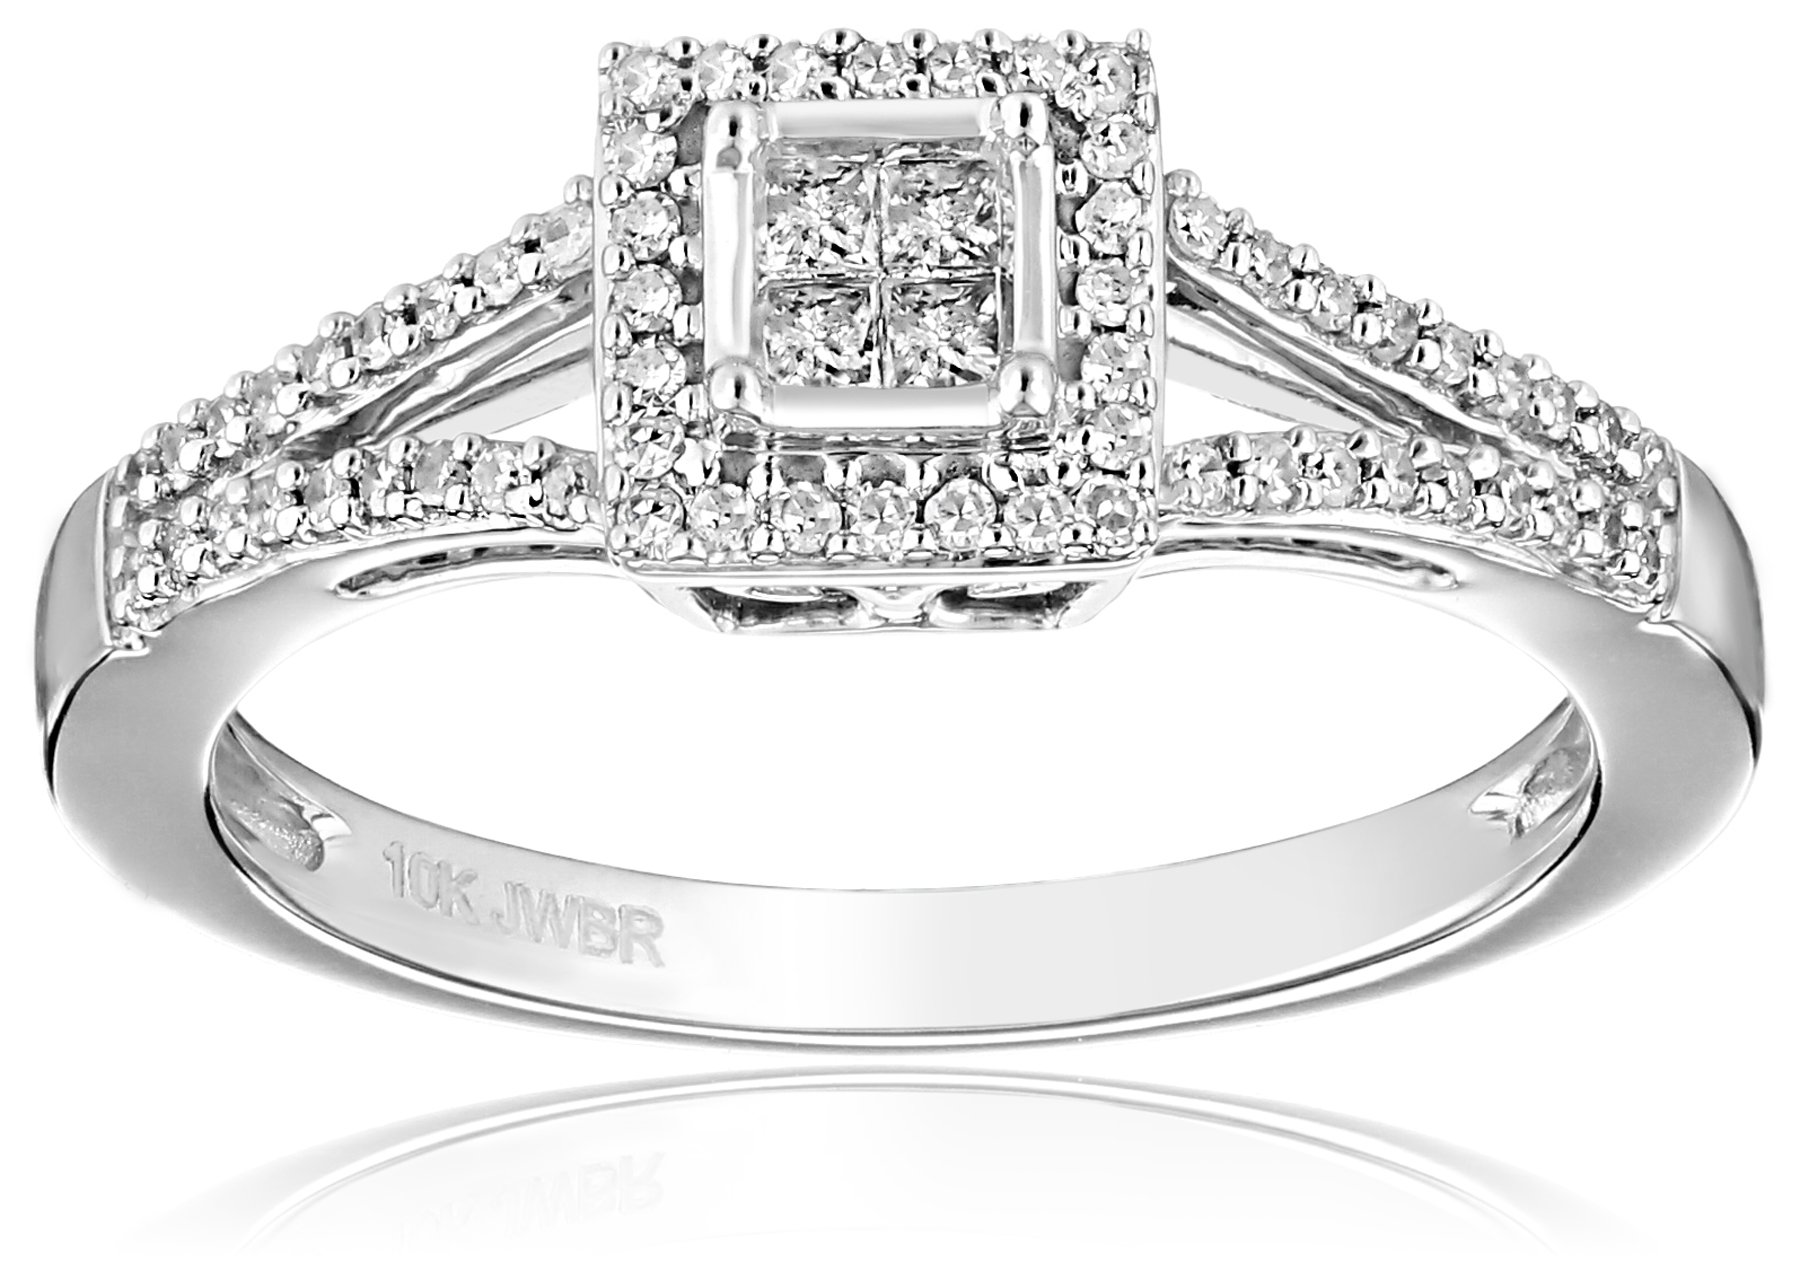 10K White Gold Princess Cut Diamond Promise Ring (1/4cttw), Size 6 by Amazon Collection